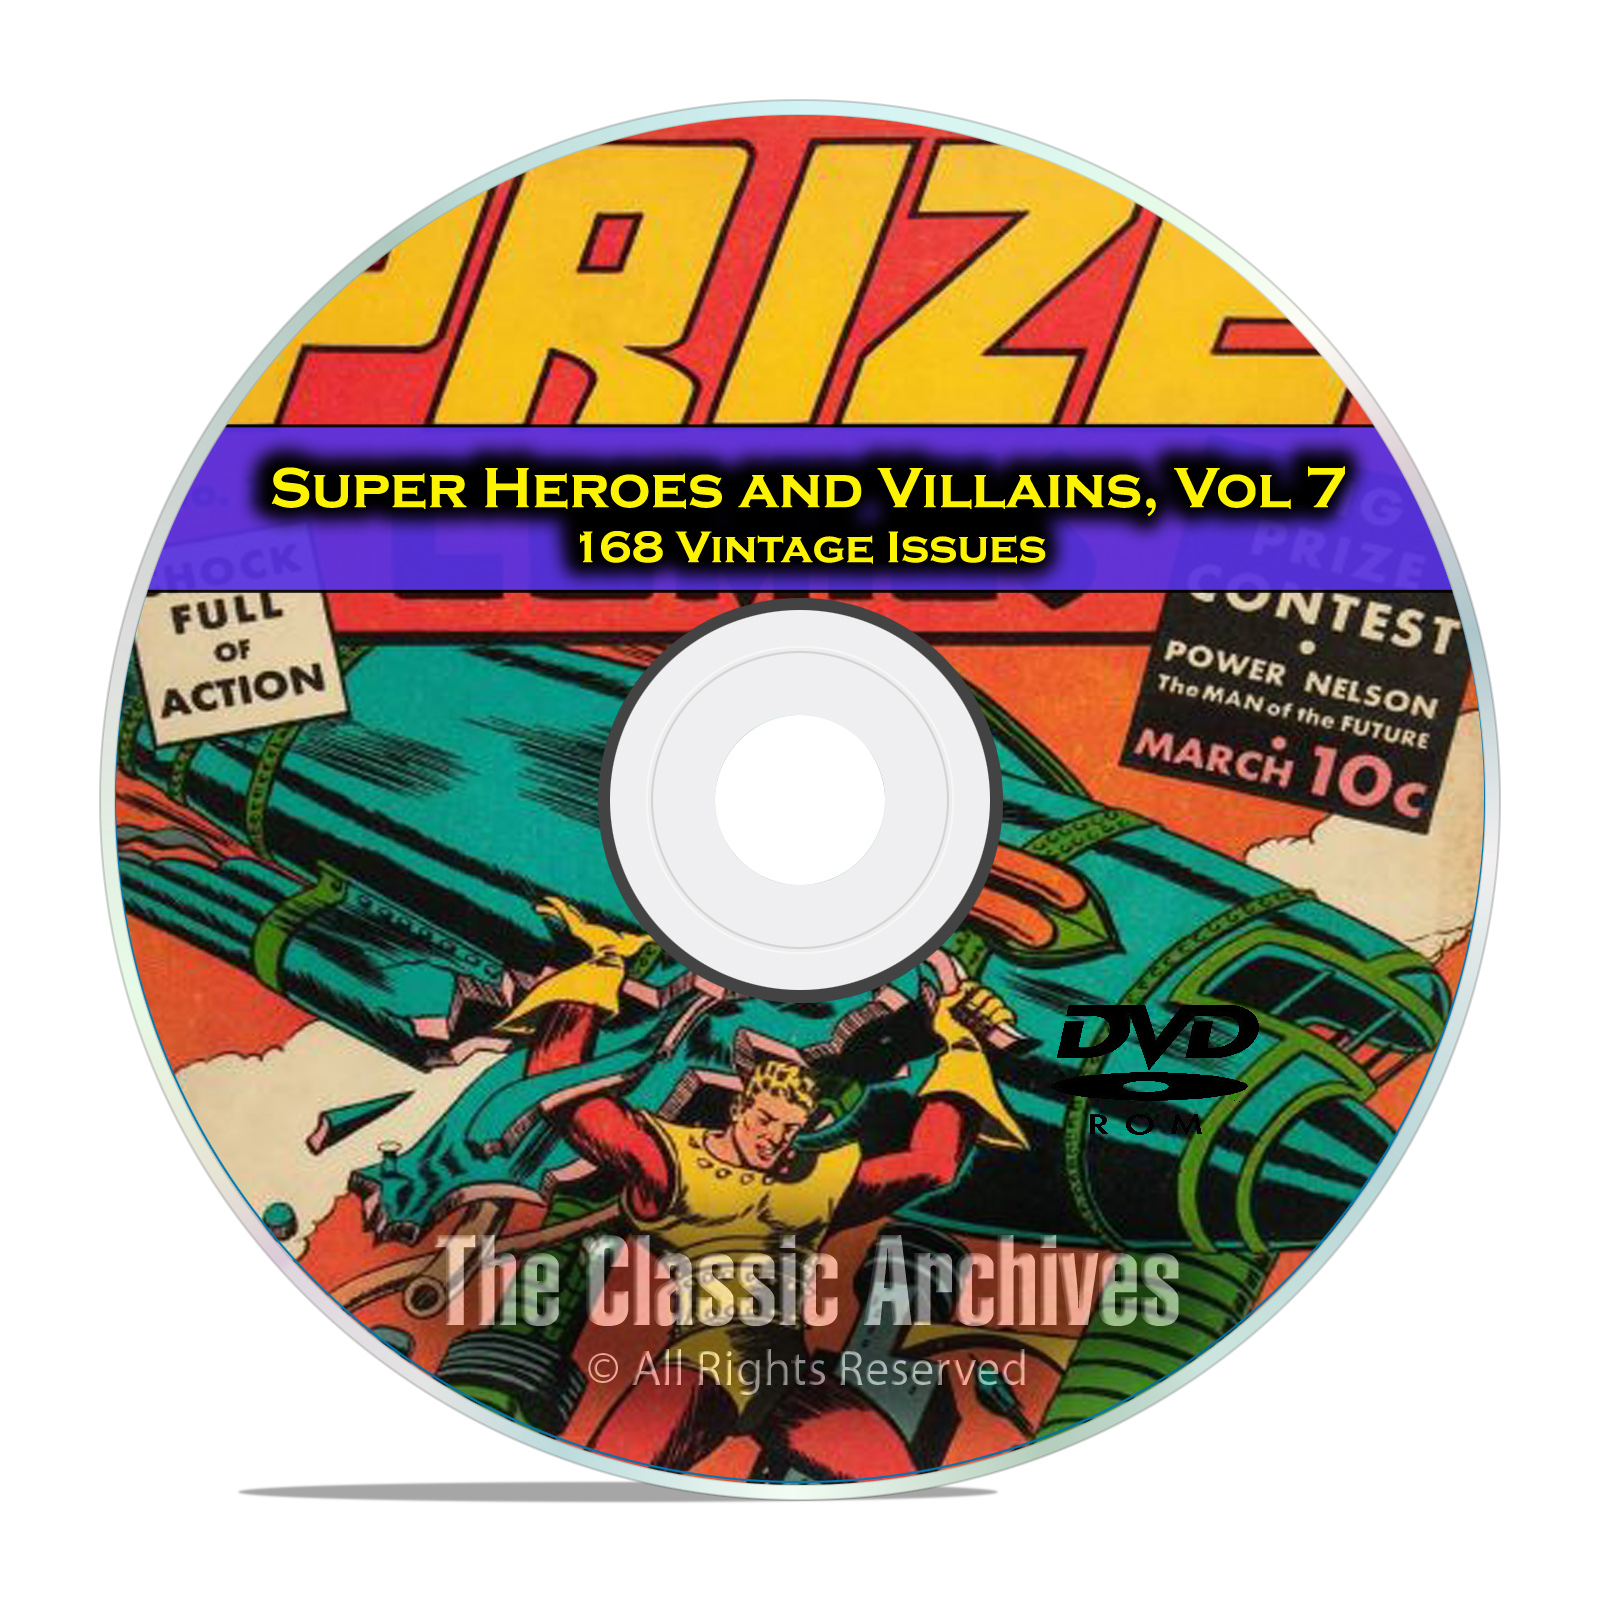 Super Hero, Villains, Vol 7, Prize and Target Comics, Golden Age Comics DVD